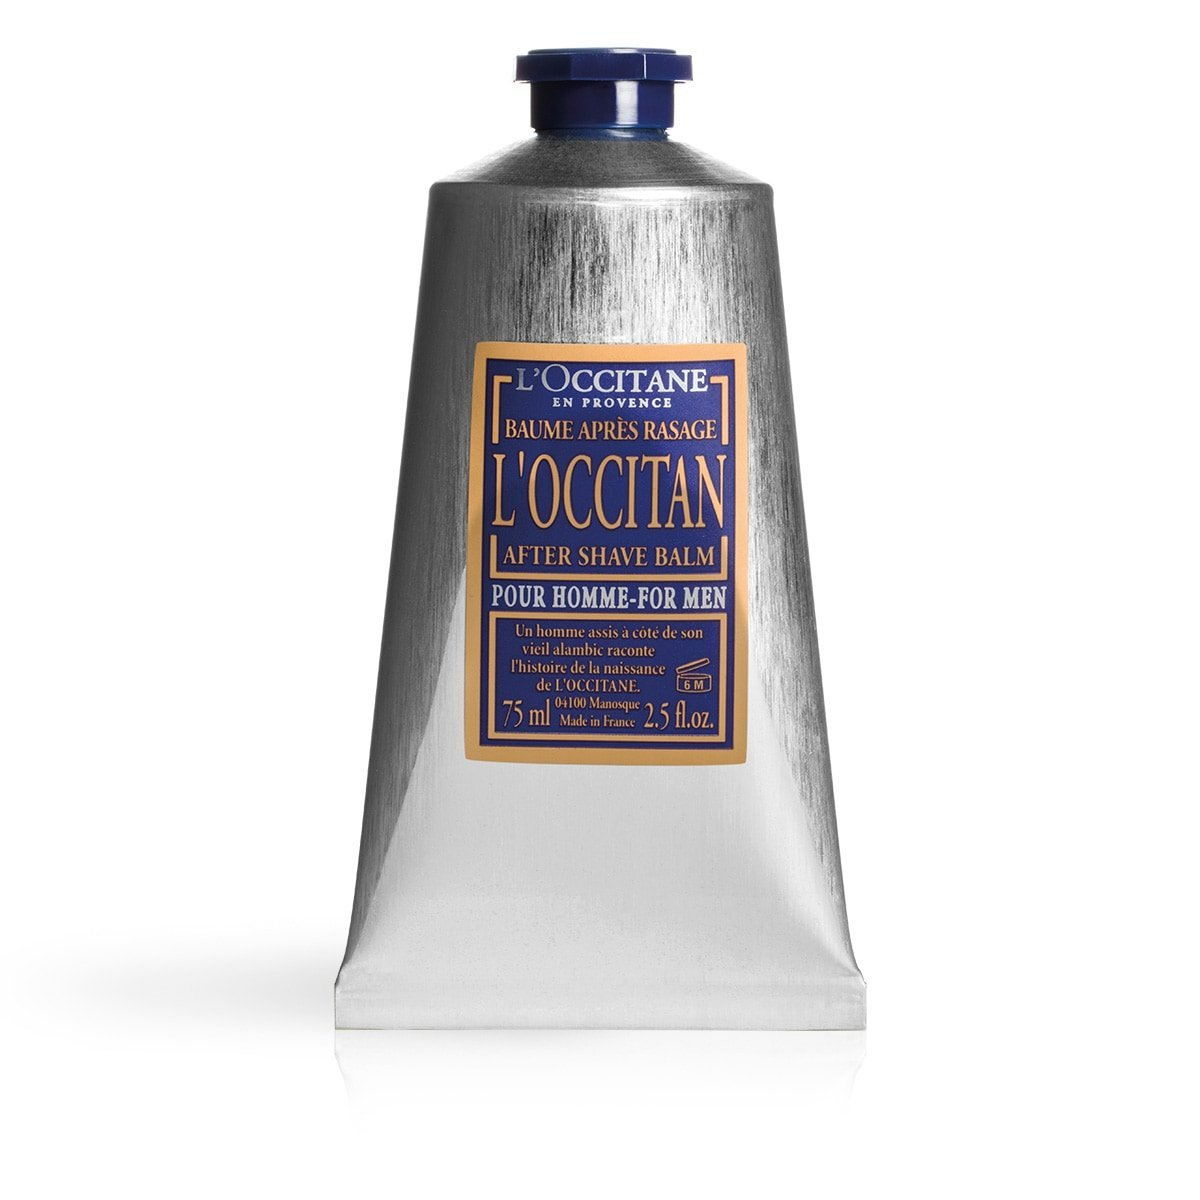 L'Occitane Moisturizing L'Occitan After Shave Balm for Men with Shea Butter, 2.5 fl. oz. by L'Occitane (Image #1)